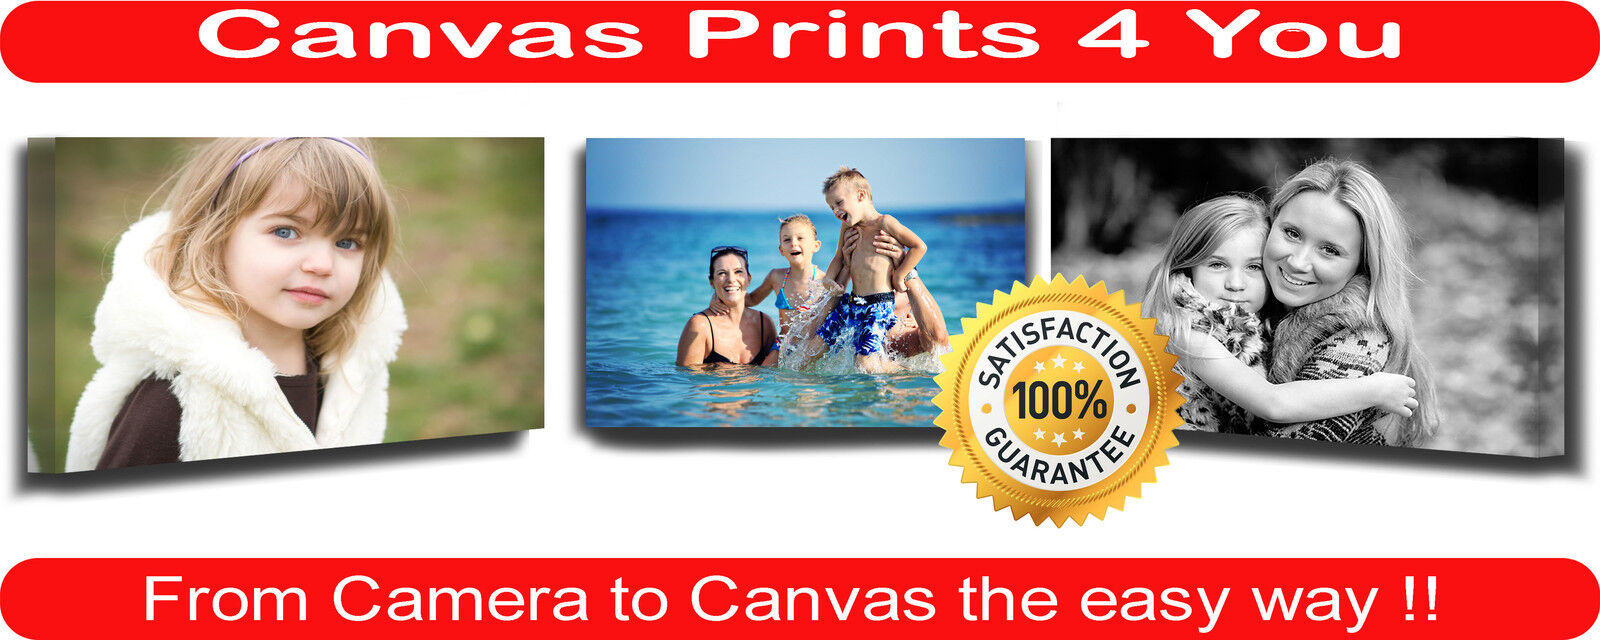 Canvas Prints 4 You